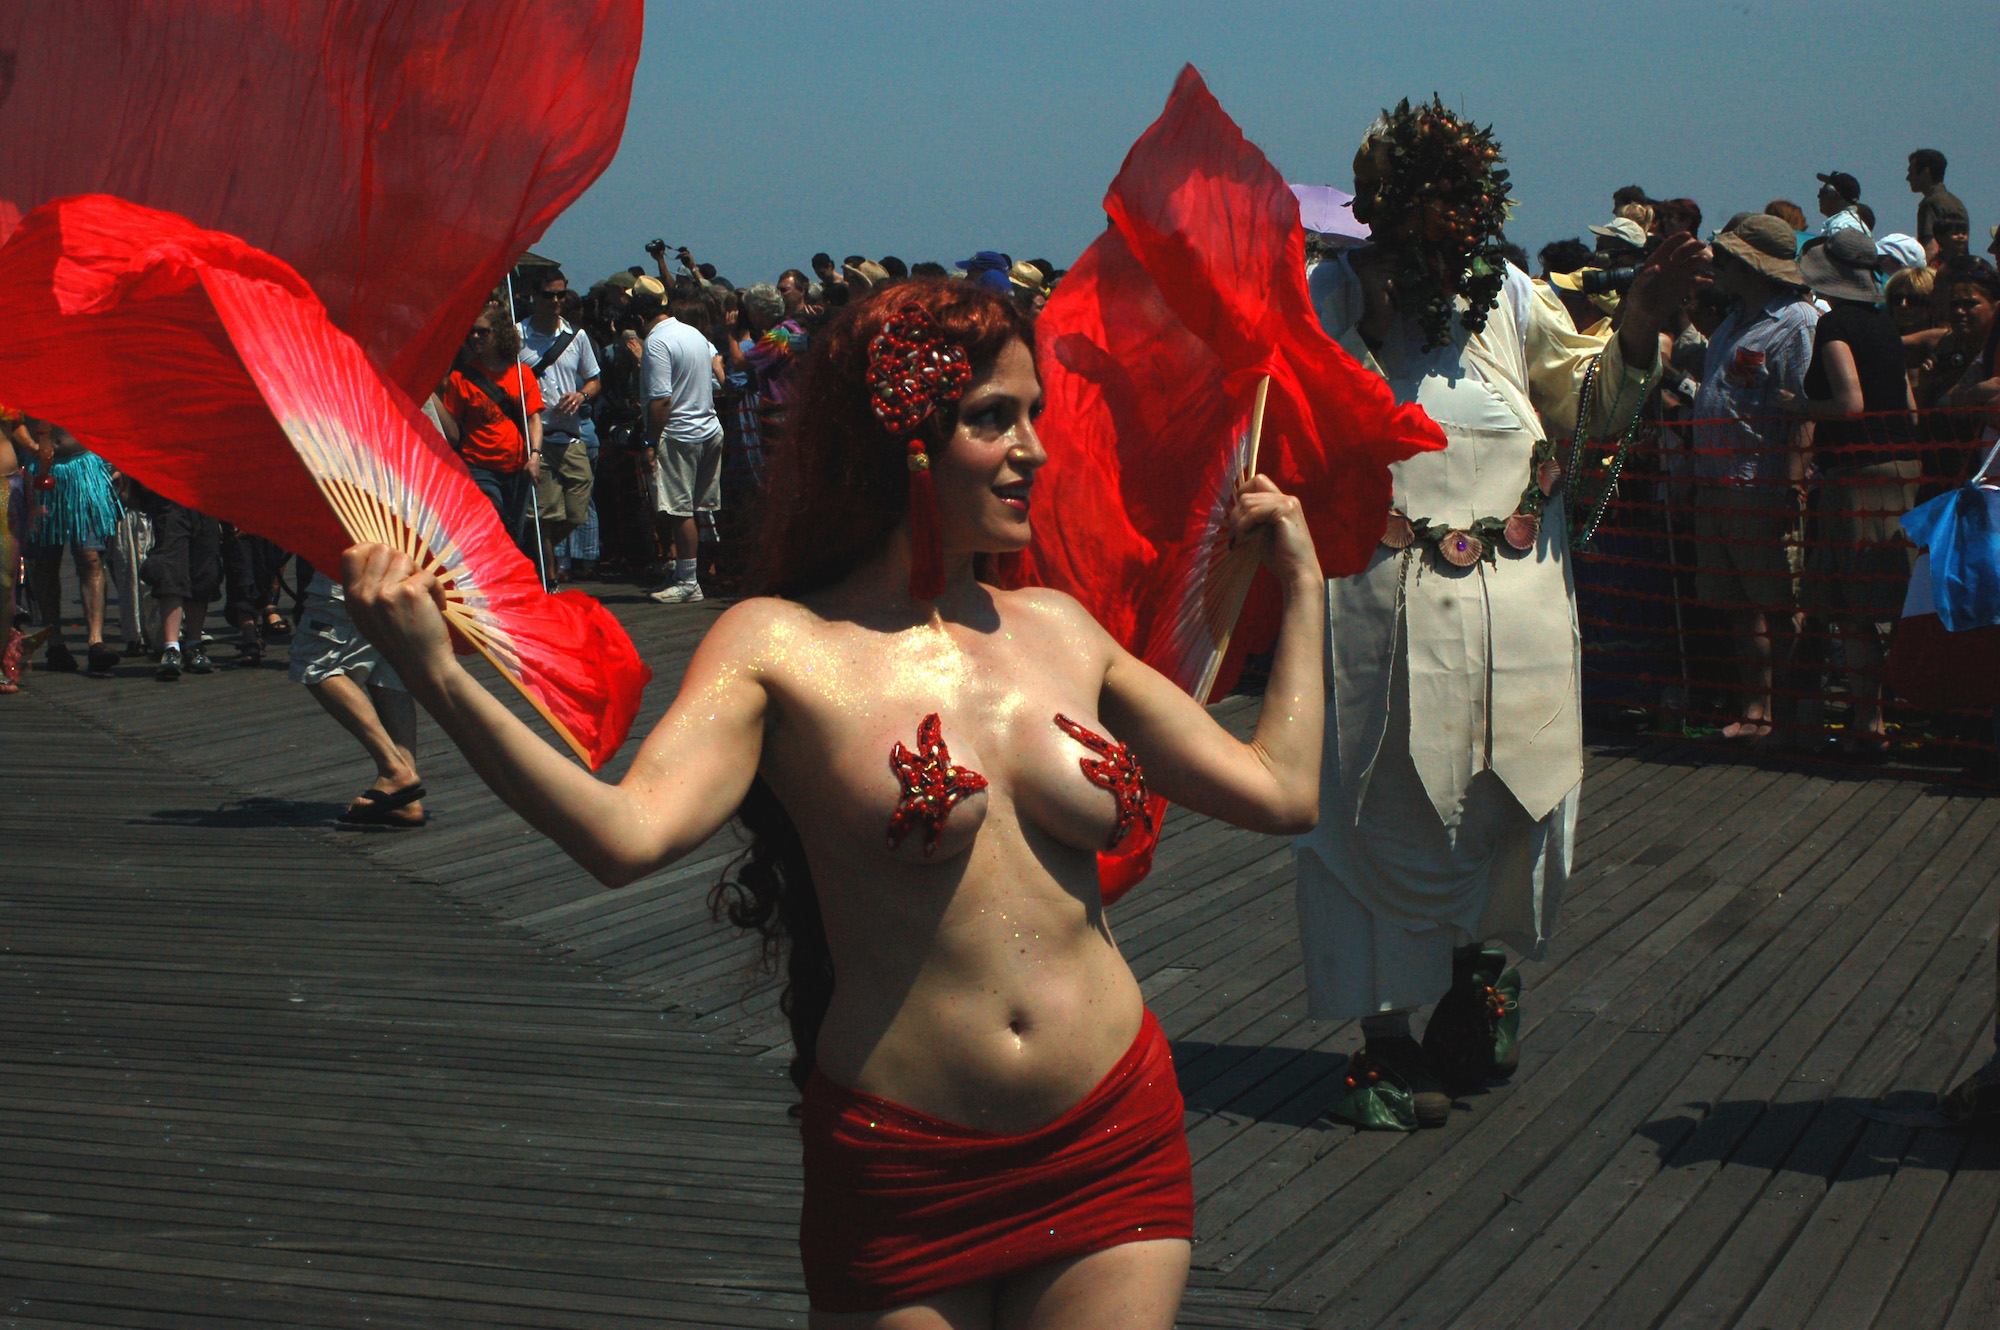 A mermaid uses fans during the Mermaid Parade on Saturday, June 21, 2008.